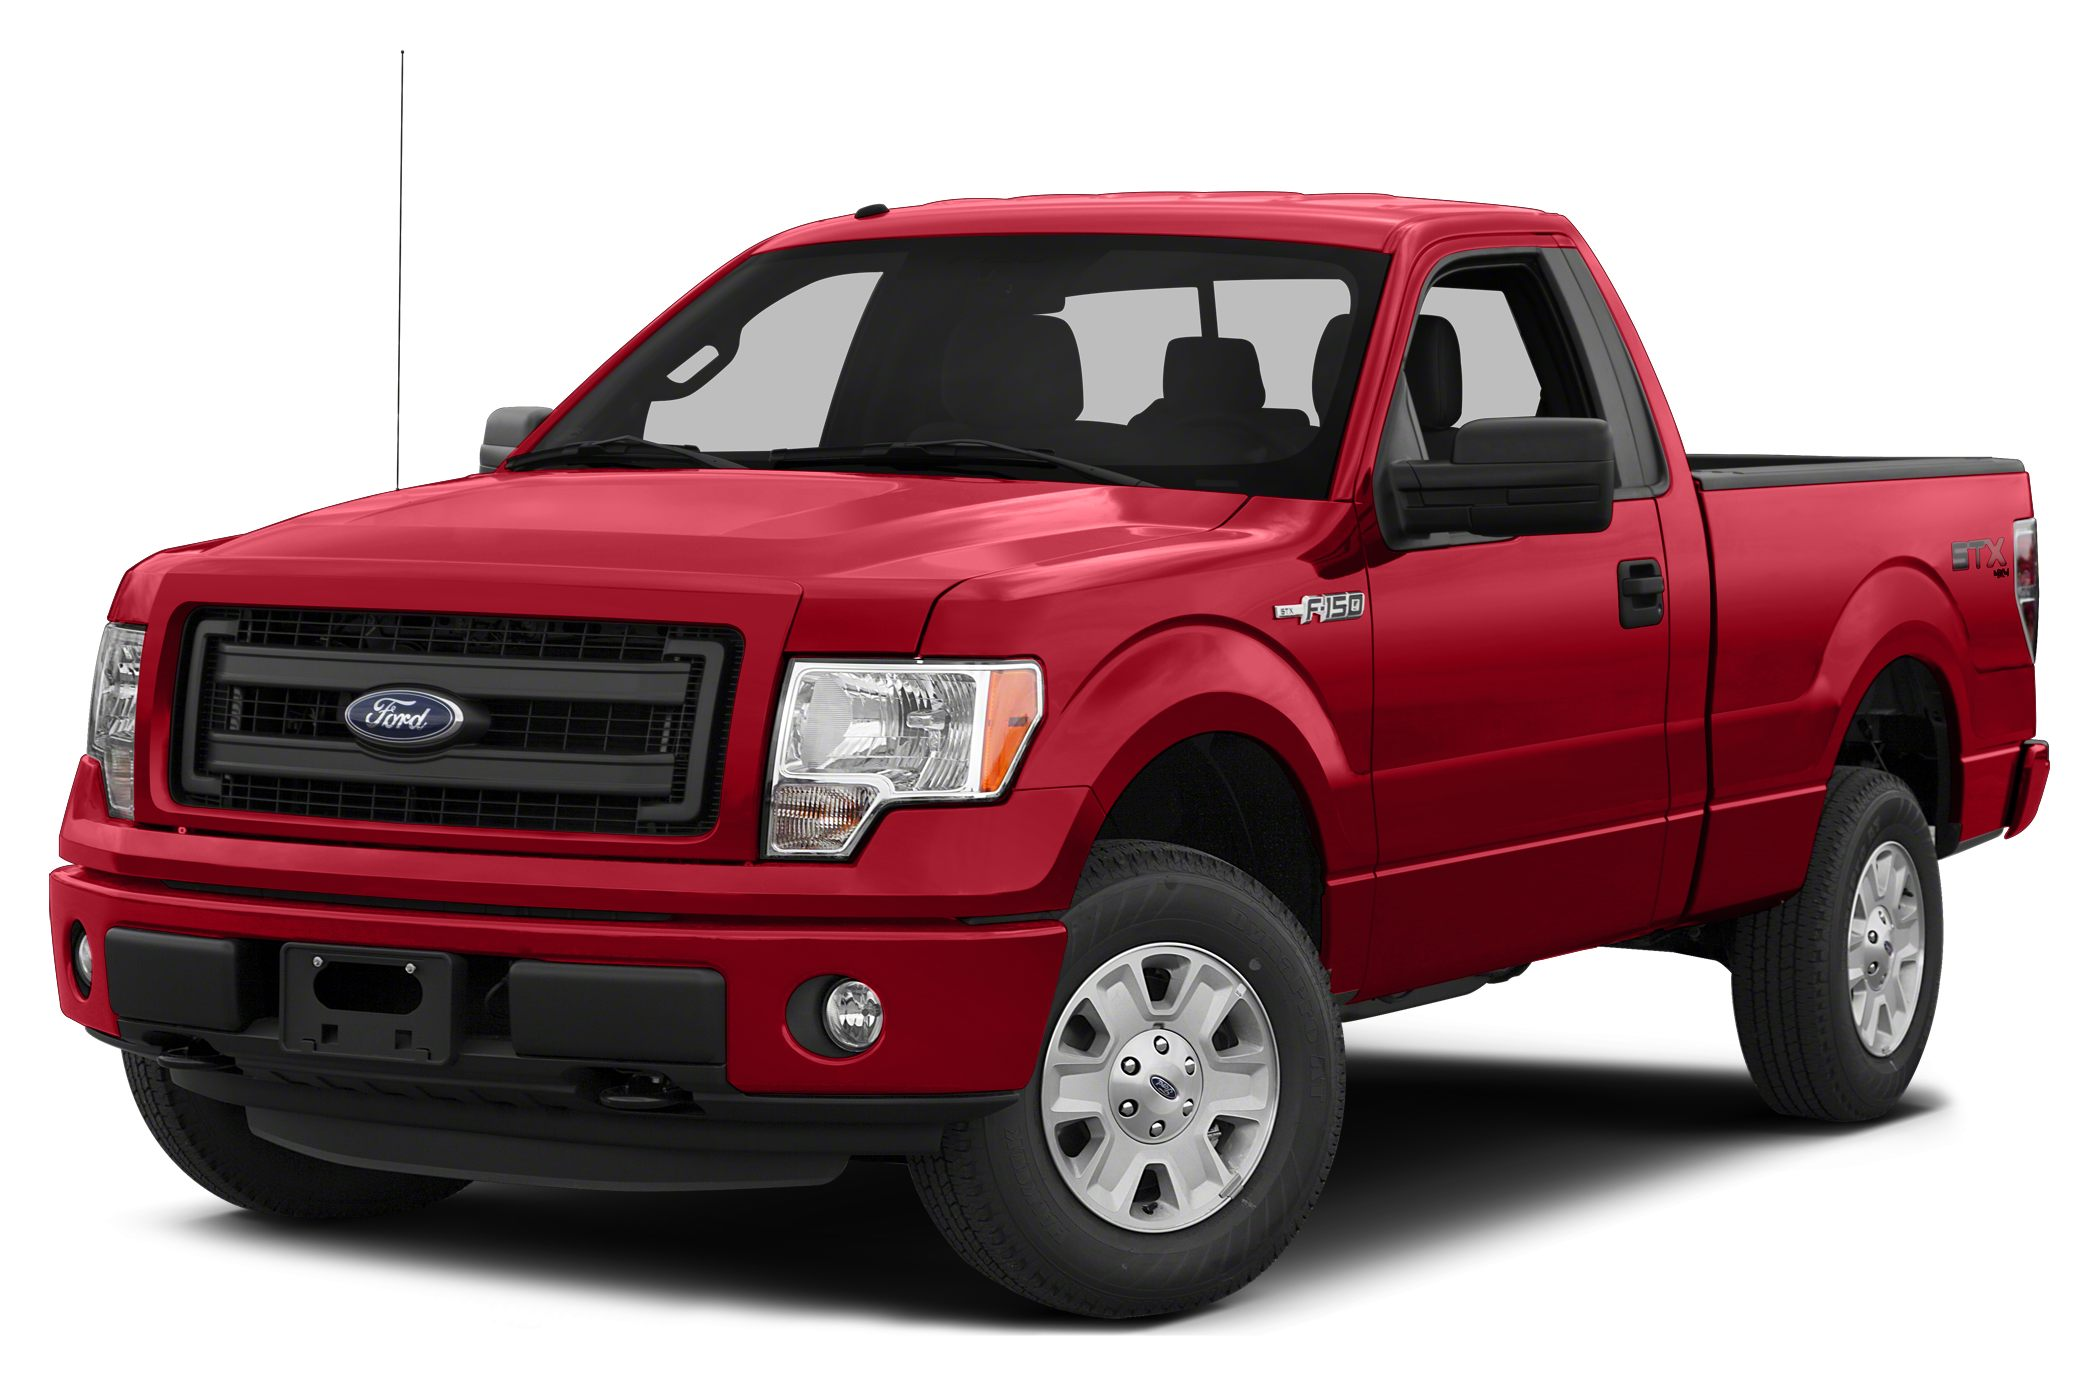 2014 Ford F-150 XL Proudly serving manatee county for over 60 years offering Cars Trucks SUVs